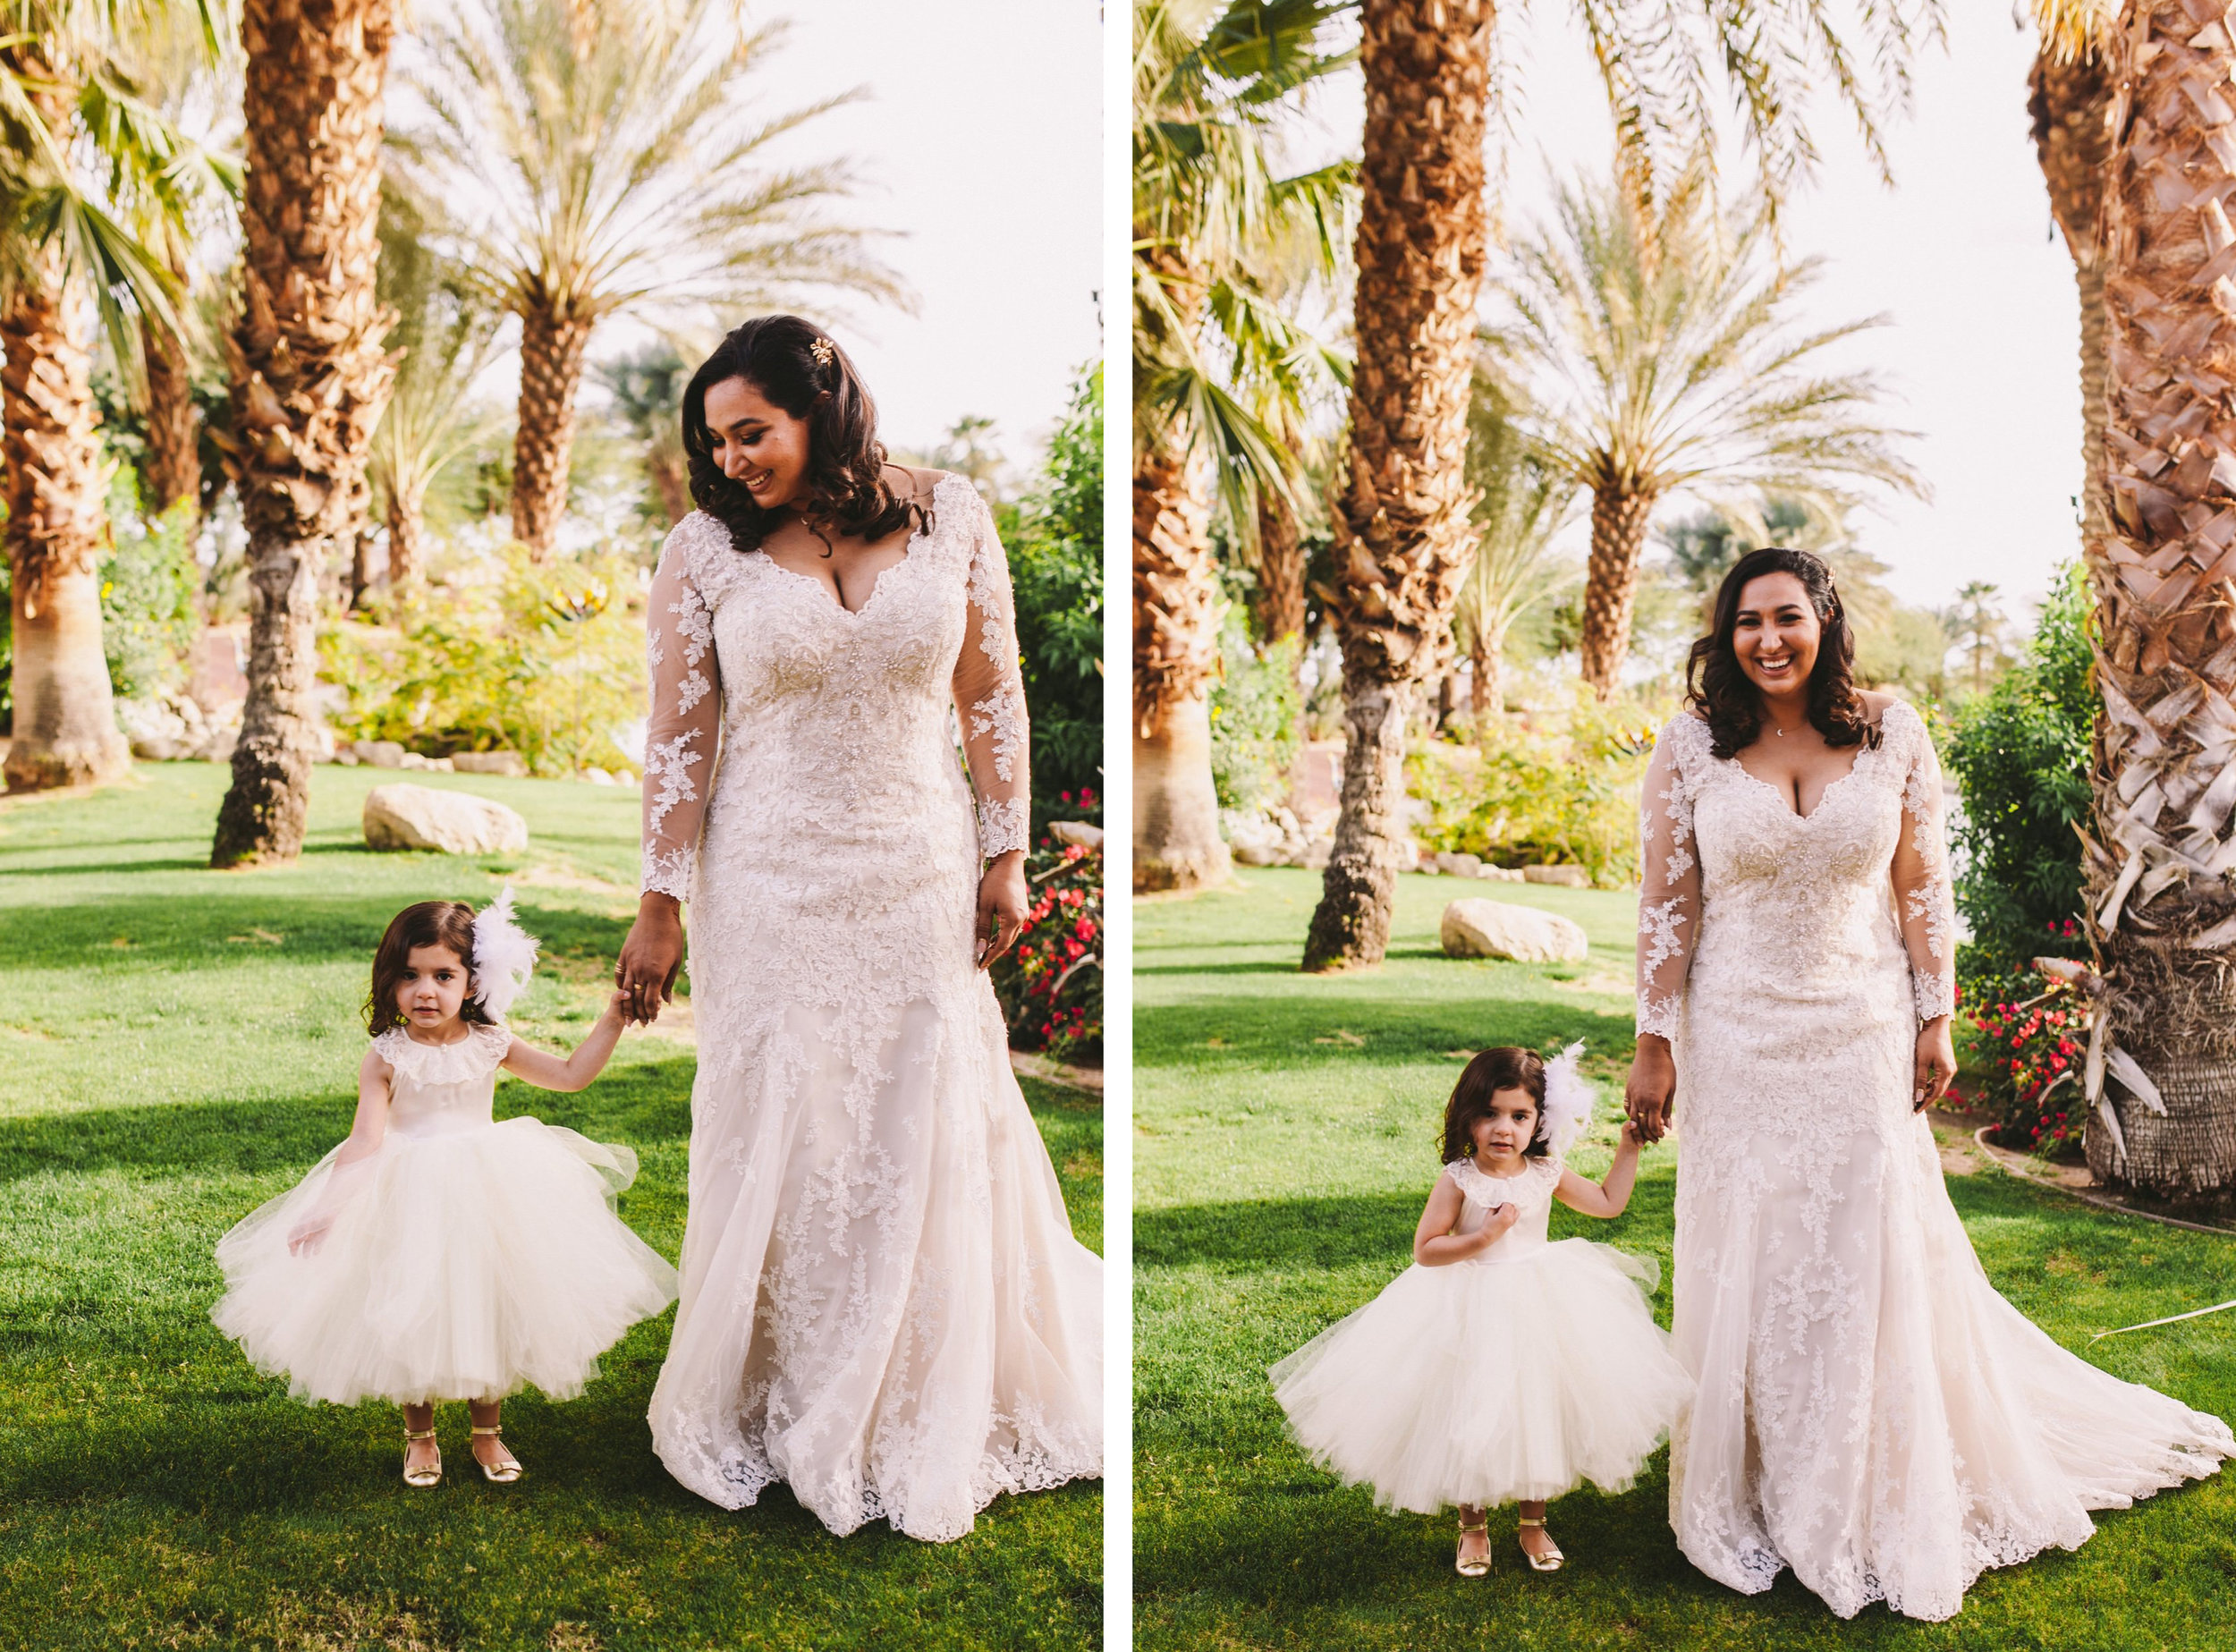 Bride & Flower Girl Portrait During Persian American Wedding